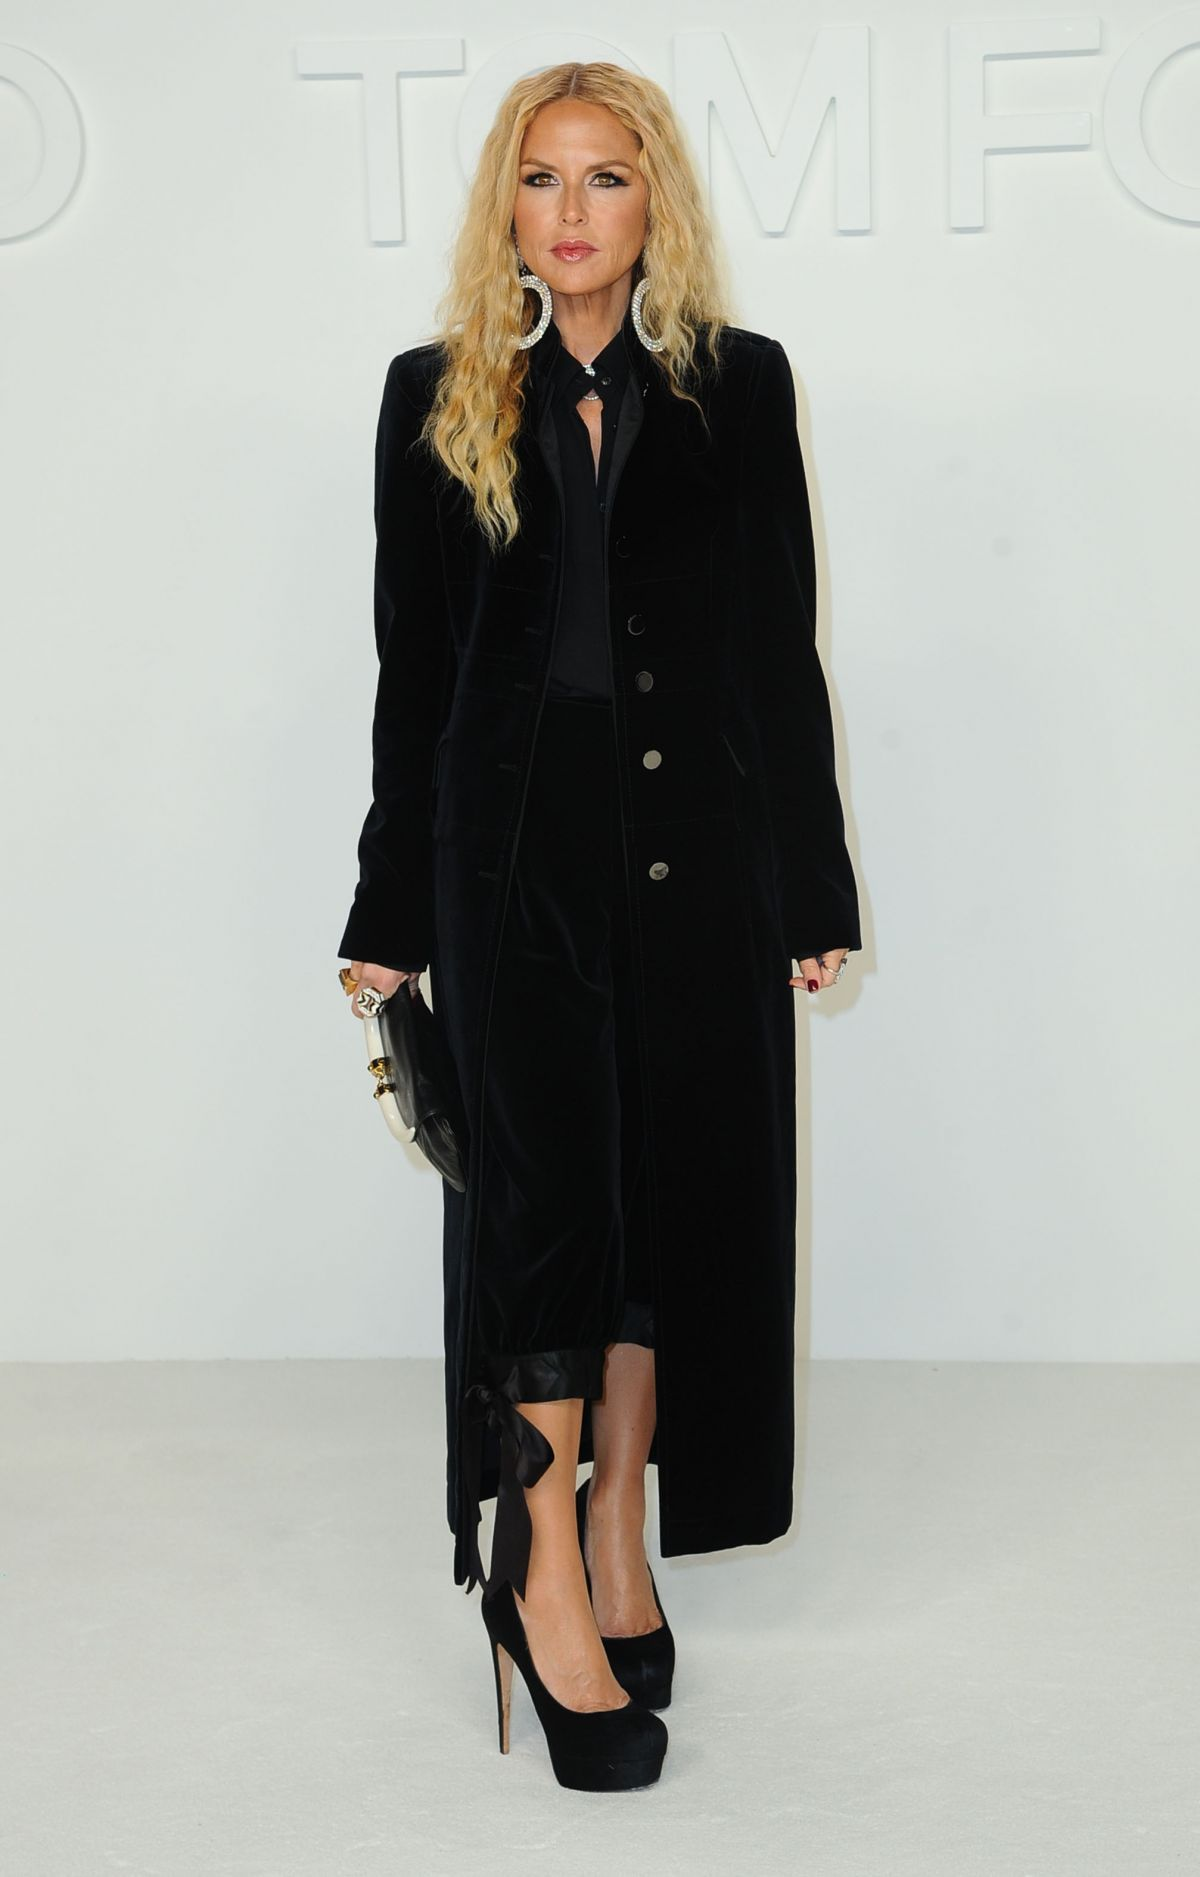 RACHEL ZOE at Tom Ford Fashion Show in Los Angeles 02/07 ...